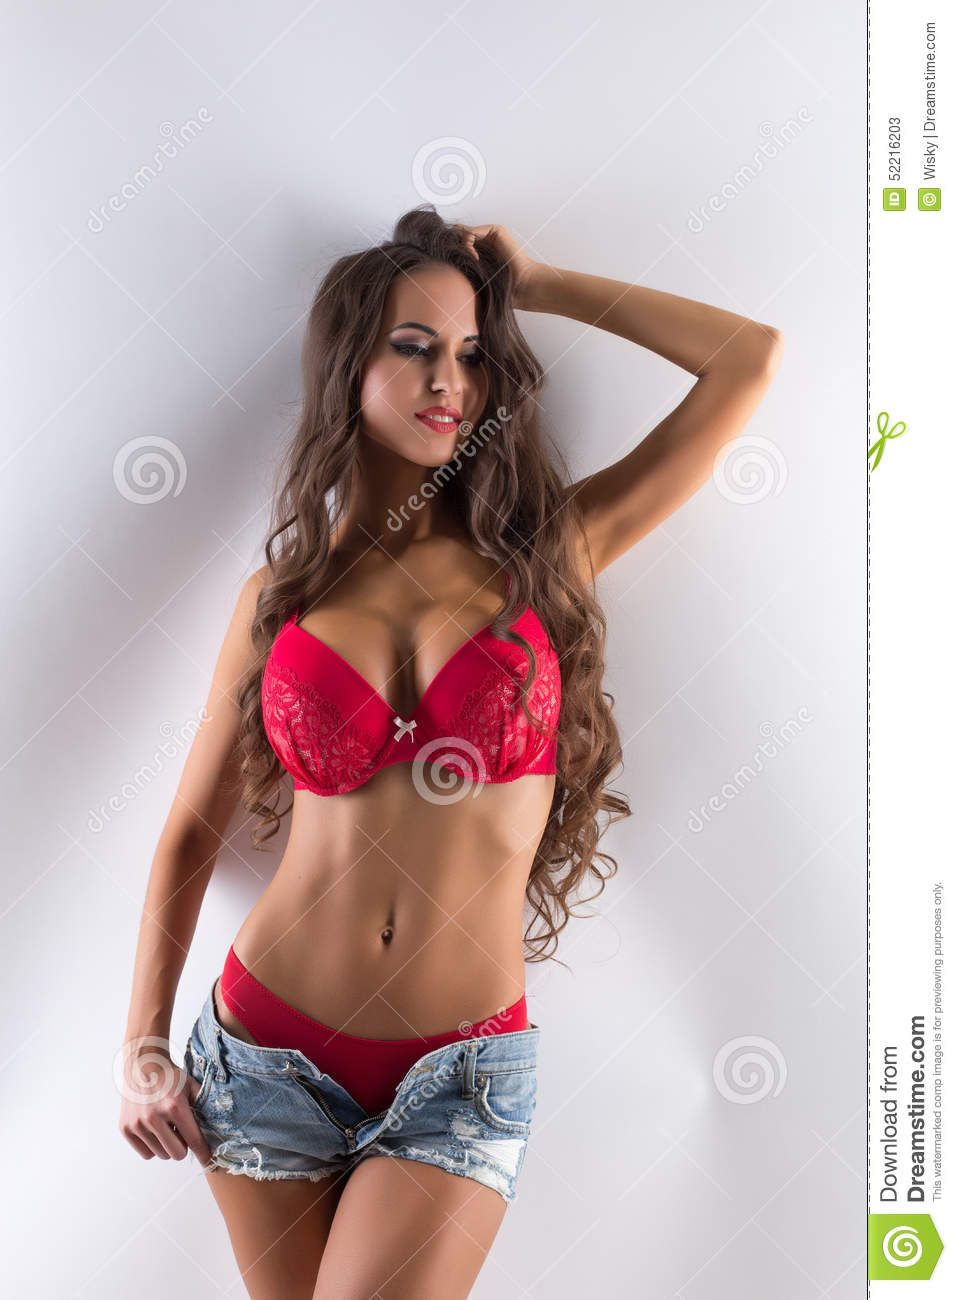 swedish dating site thaimassage skåne